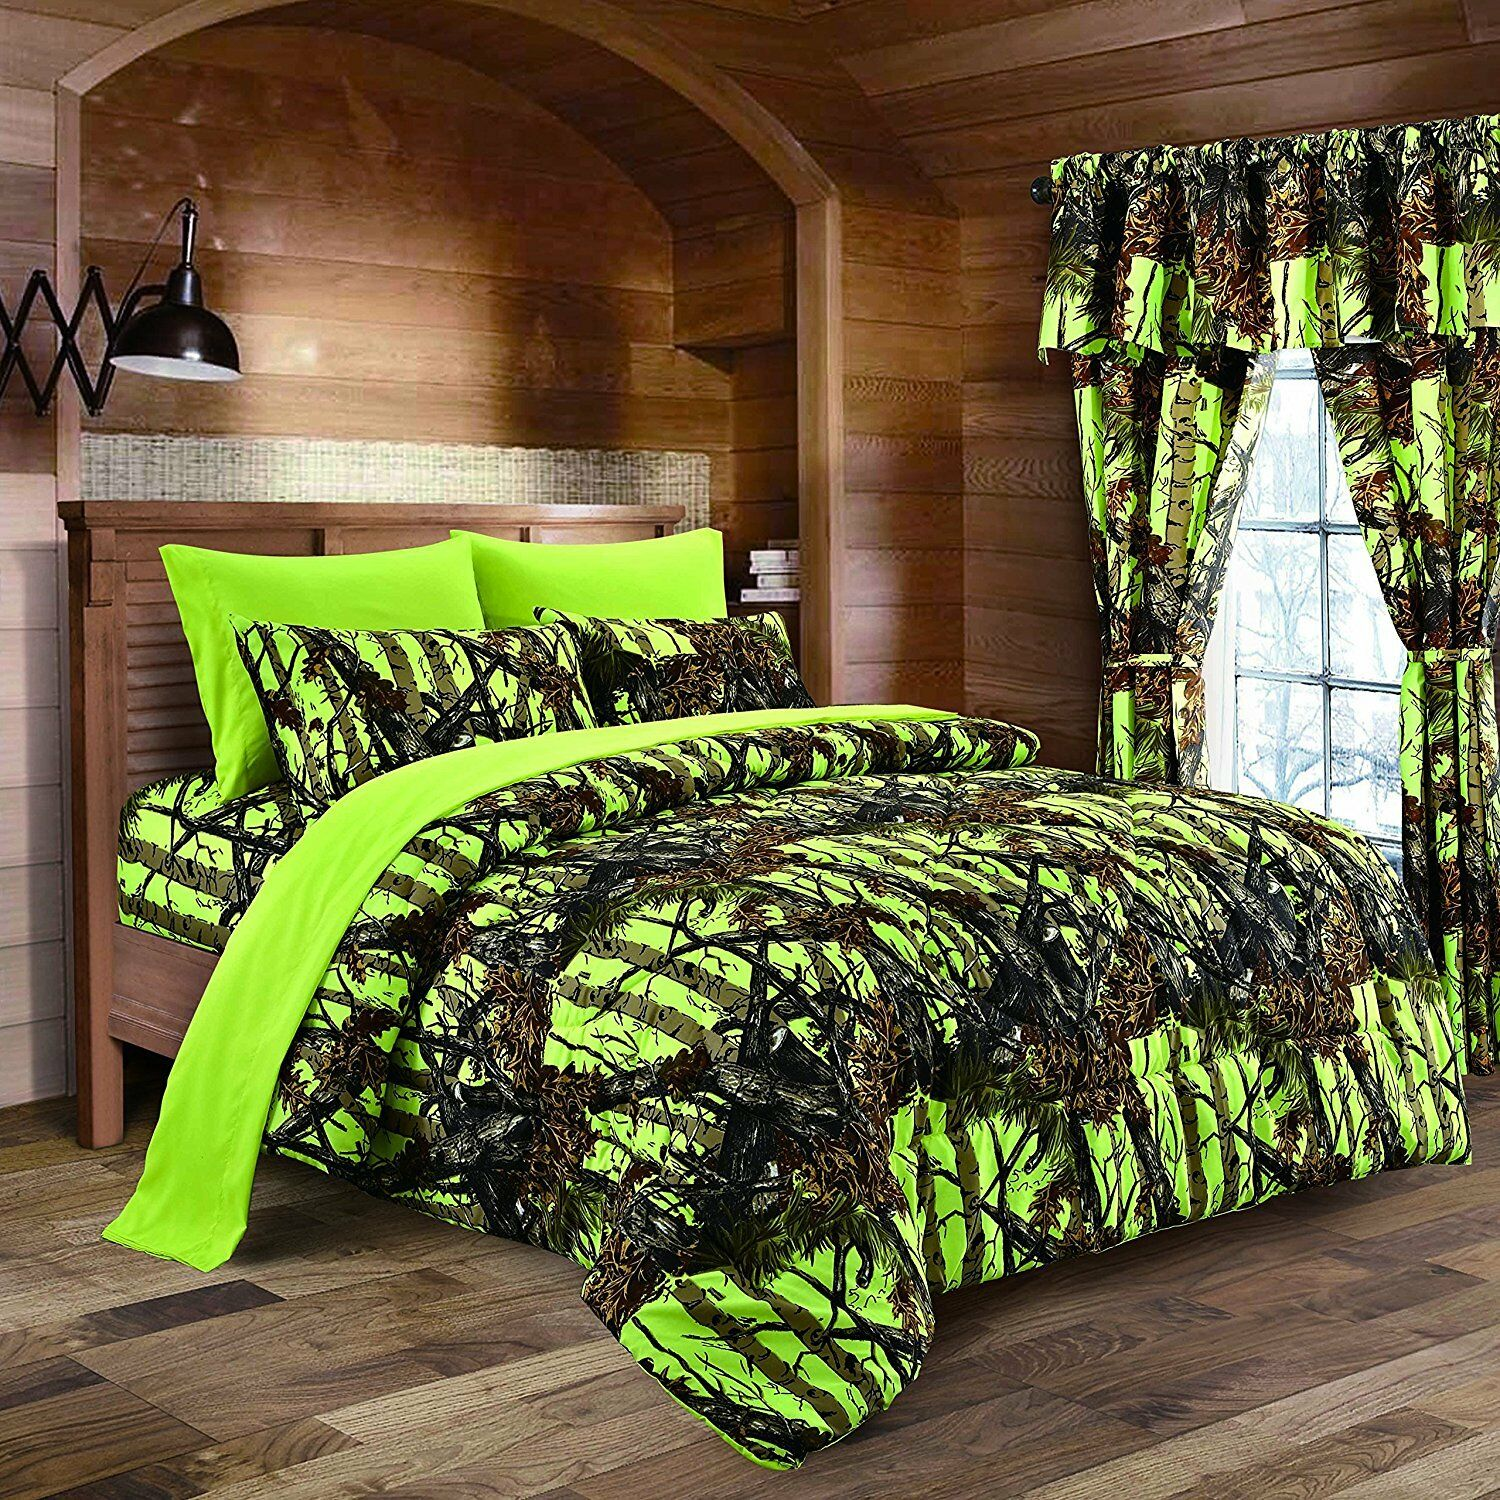 The Woods Camo Lime 12 piece Queen Size Comforter and Sheet Set with Curtains